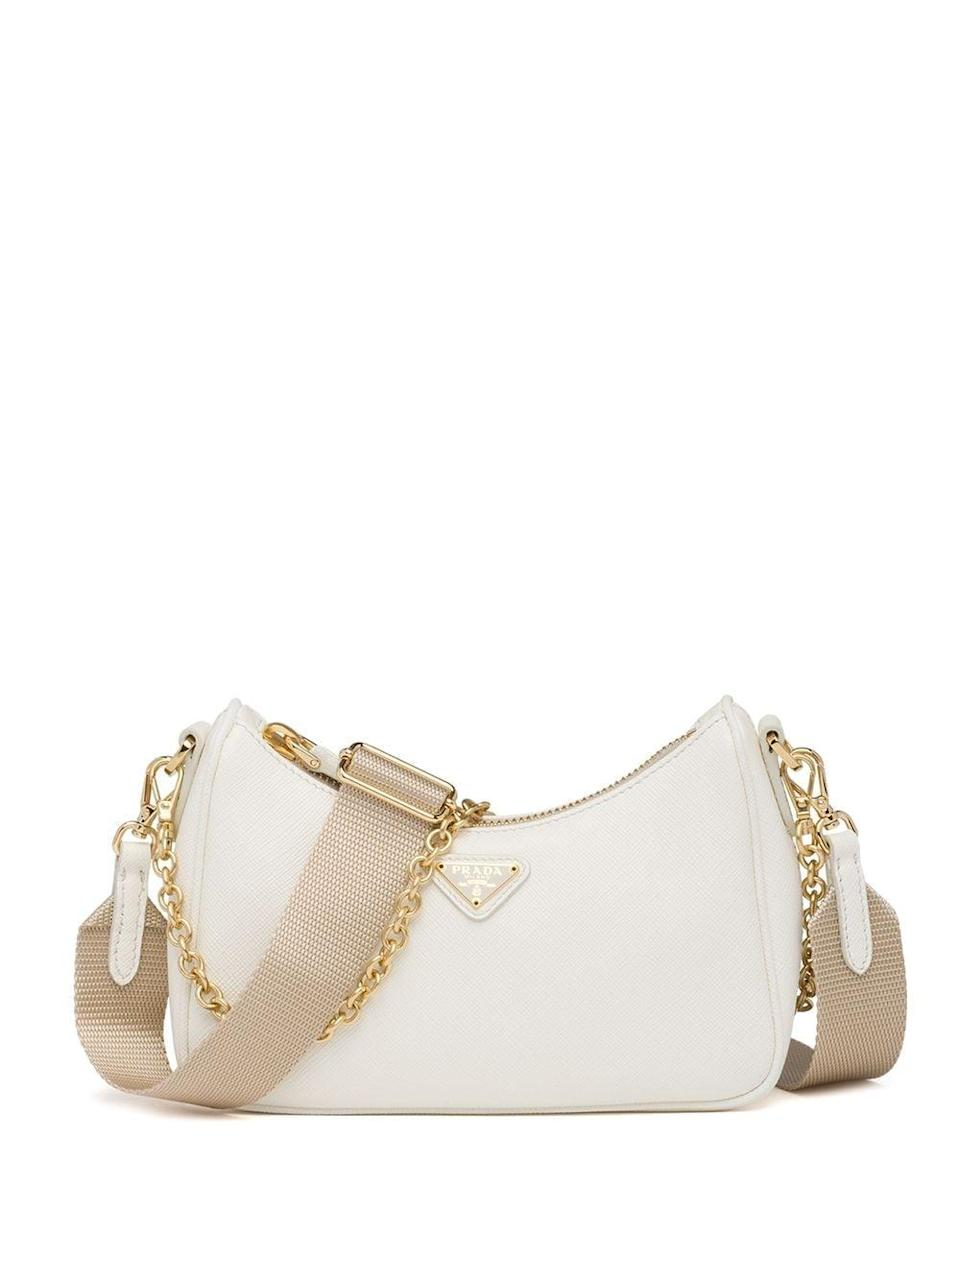 <p>The <span>Prada Saffiano Leather Mini Bag</span> ($1,490) is a clear winner. We love the white and tan mixed with gold hardware, and you can take off the tan nylon strap, making it a dainty shoulder bag.</p>